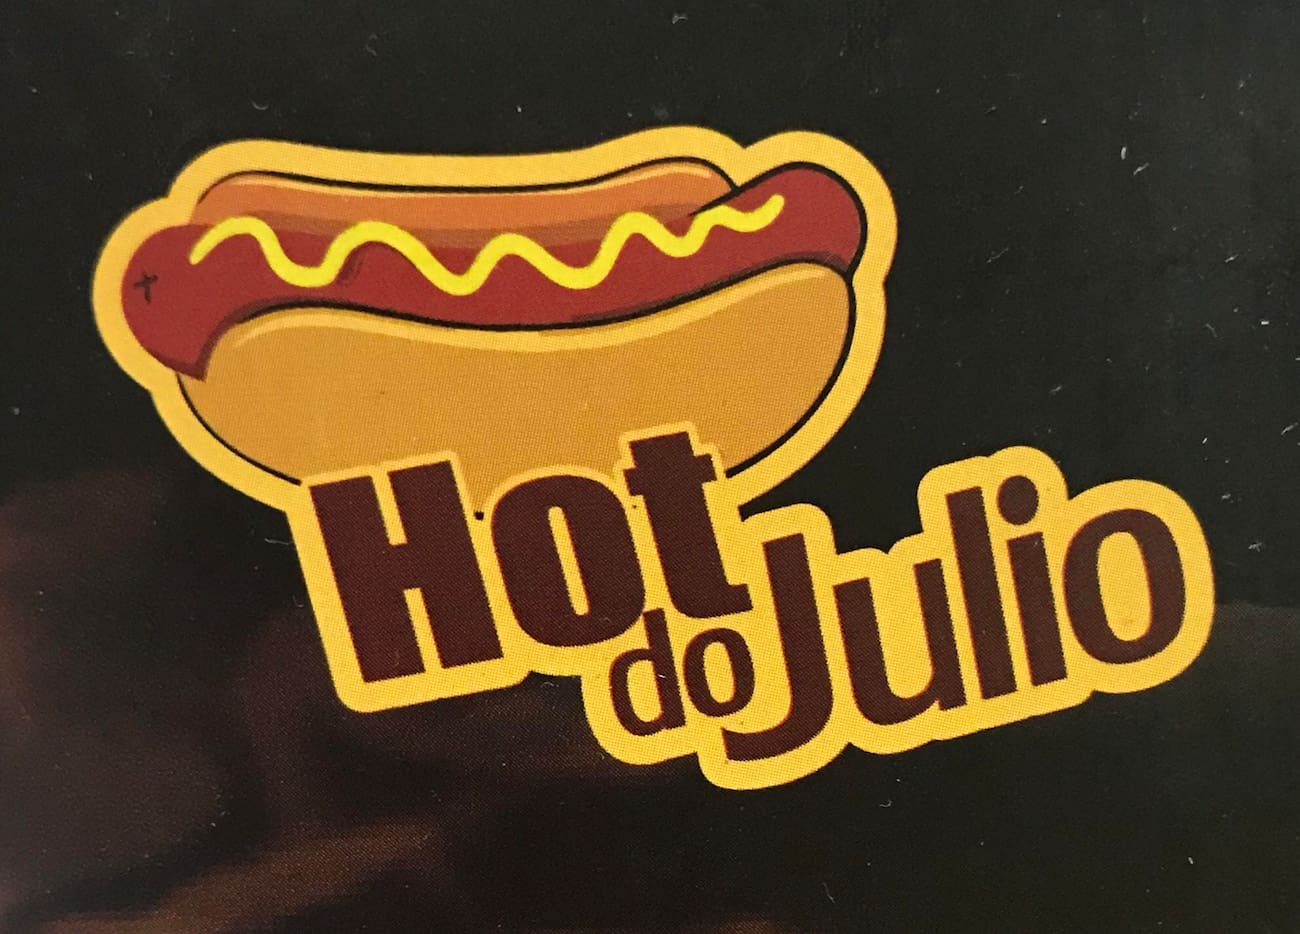 Hot Dog do Julio